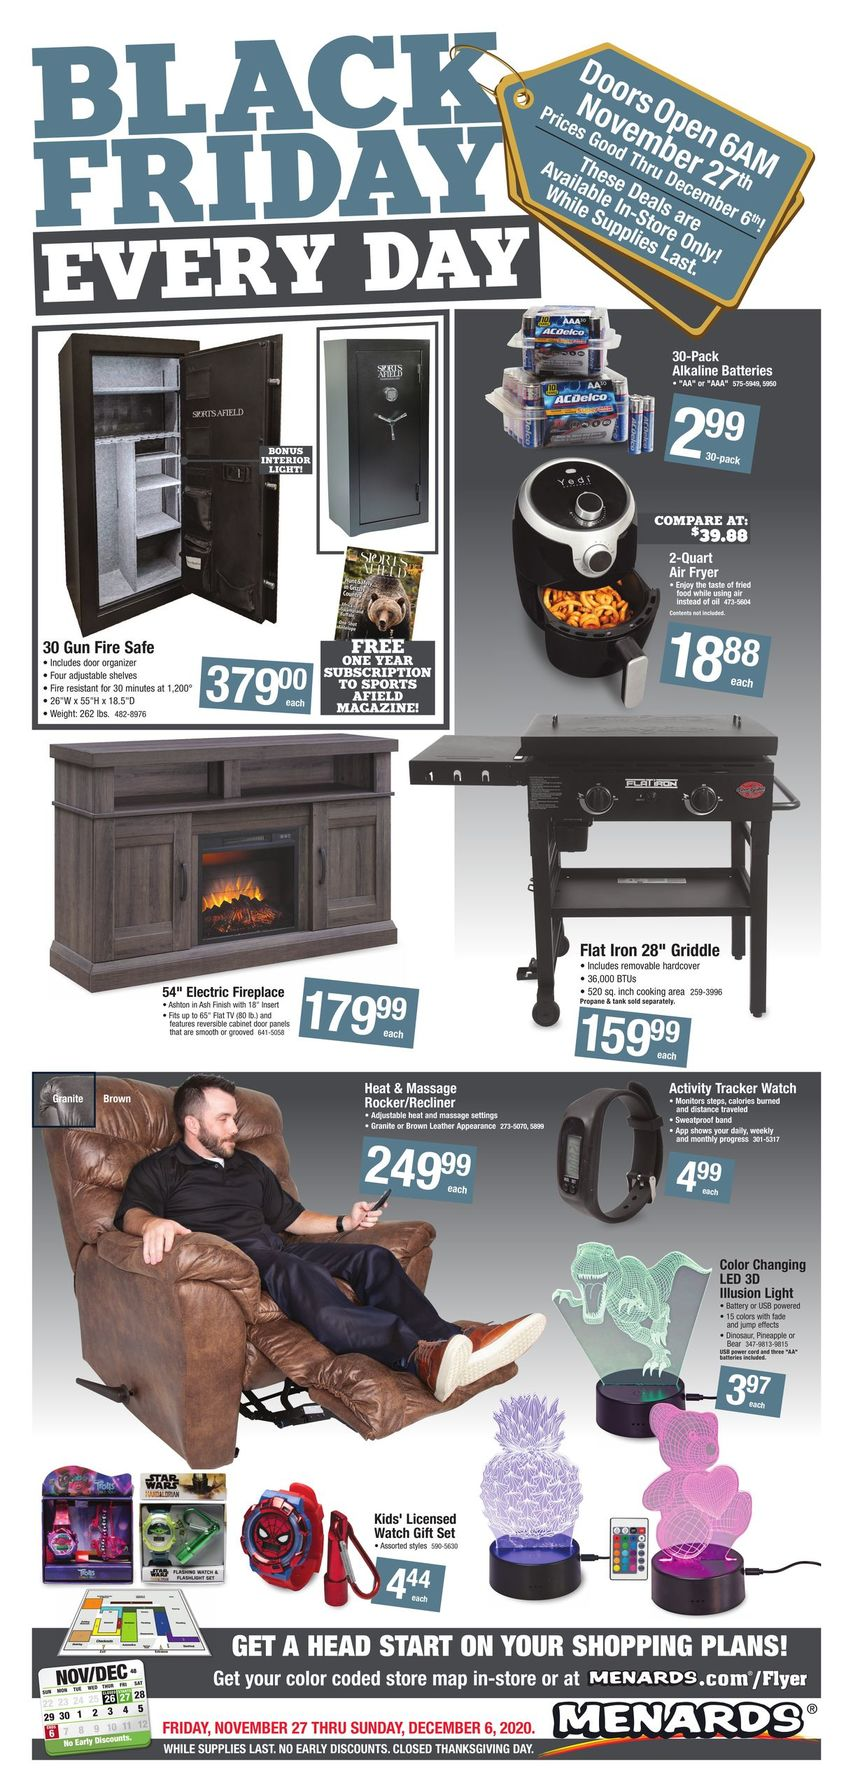 Menards Black Friday Sales Ad 2020